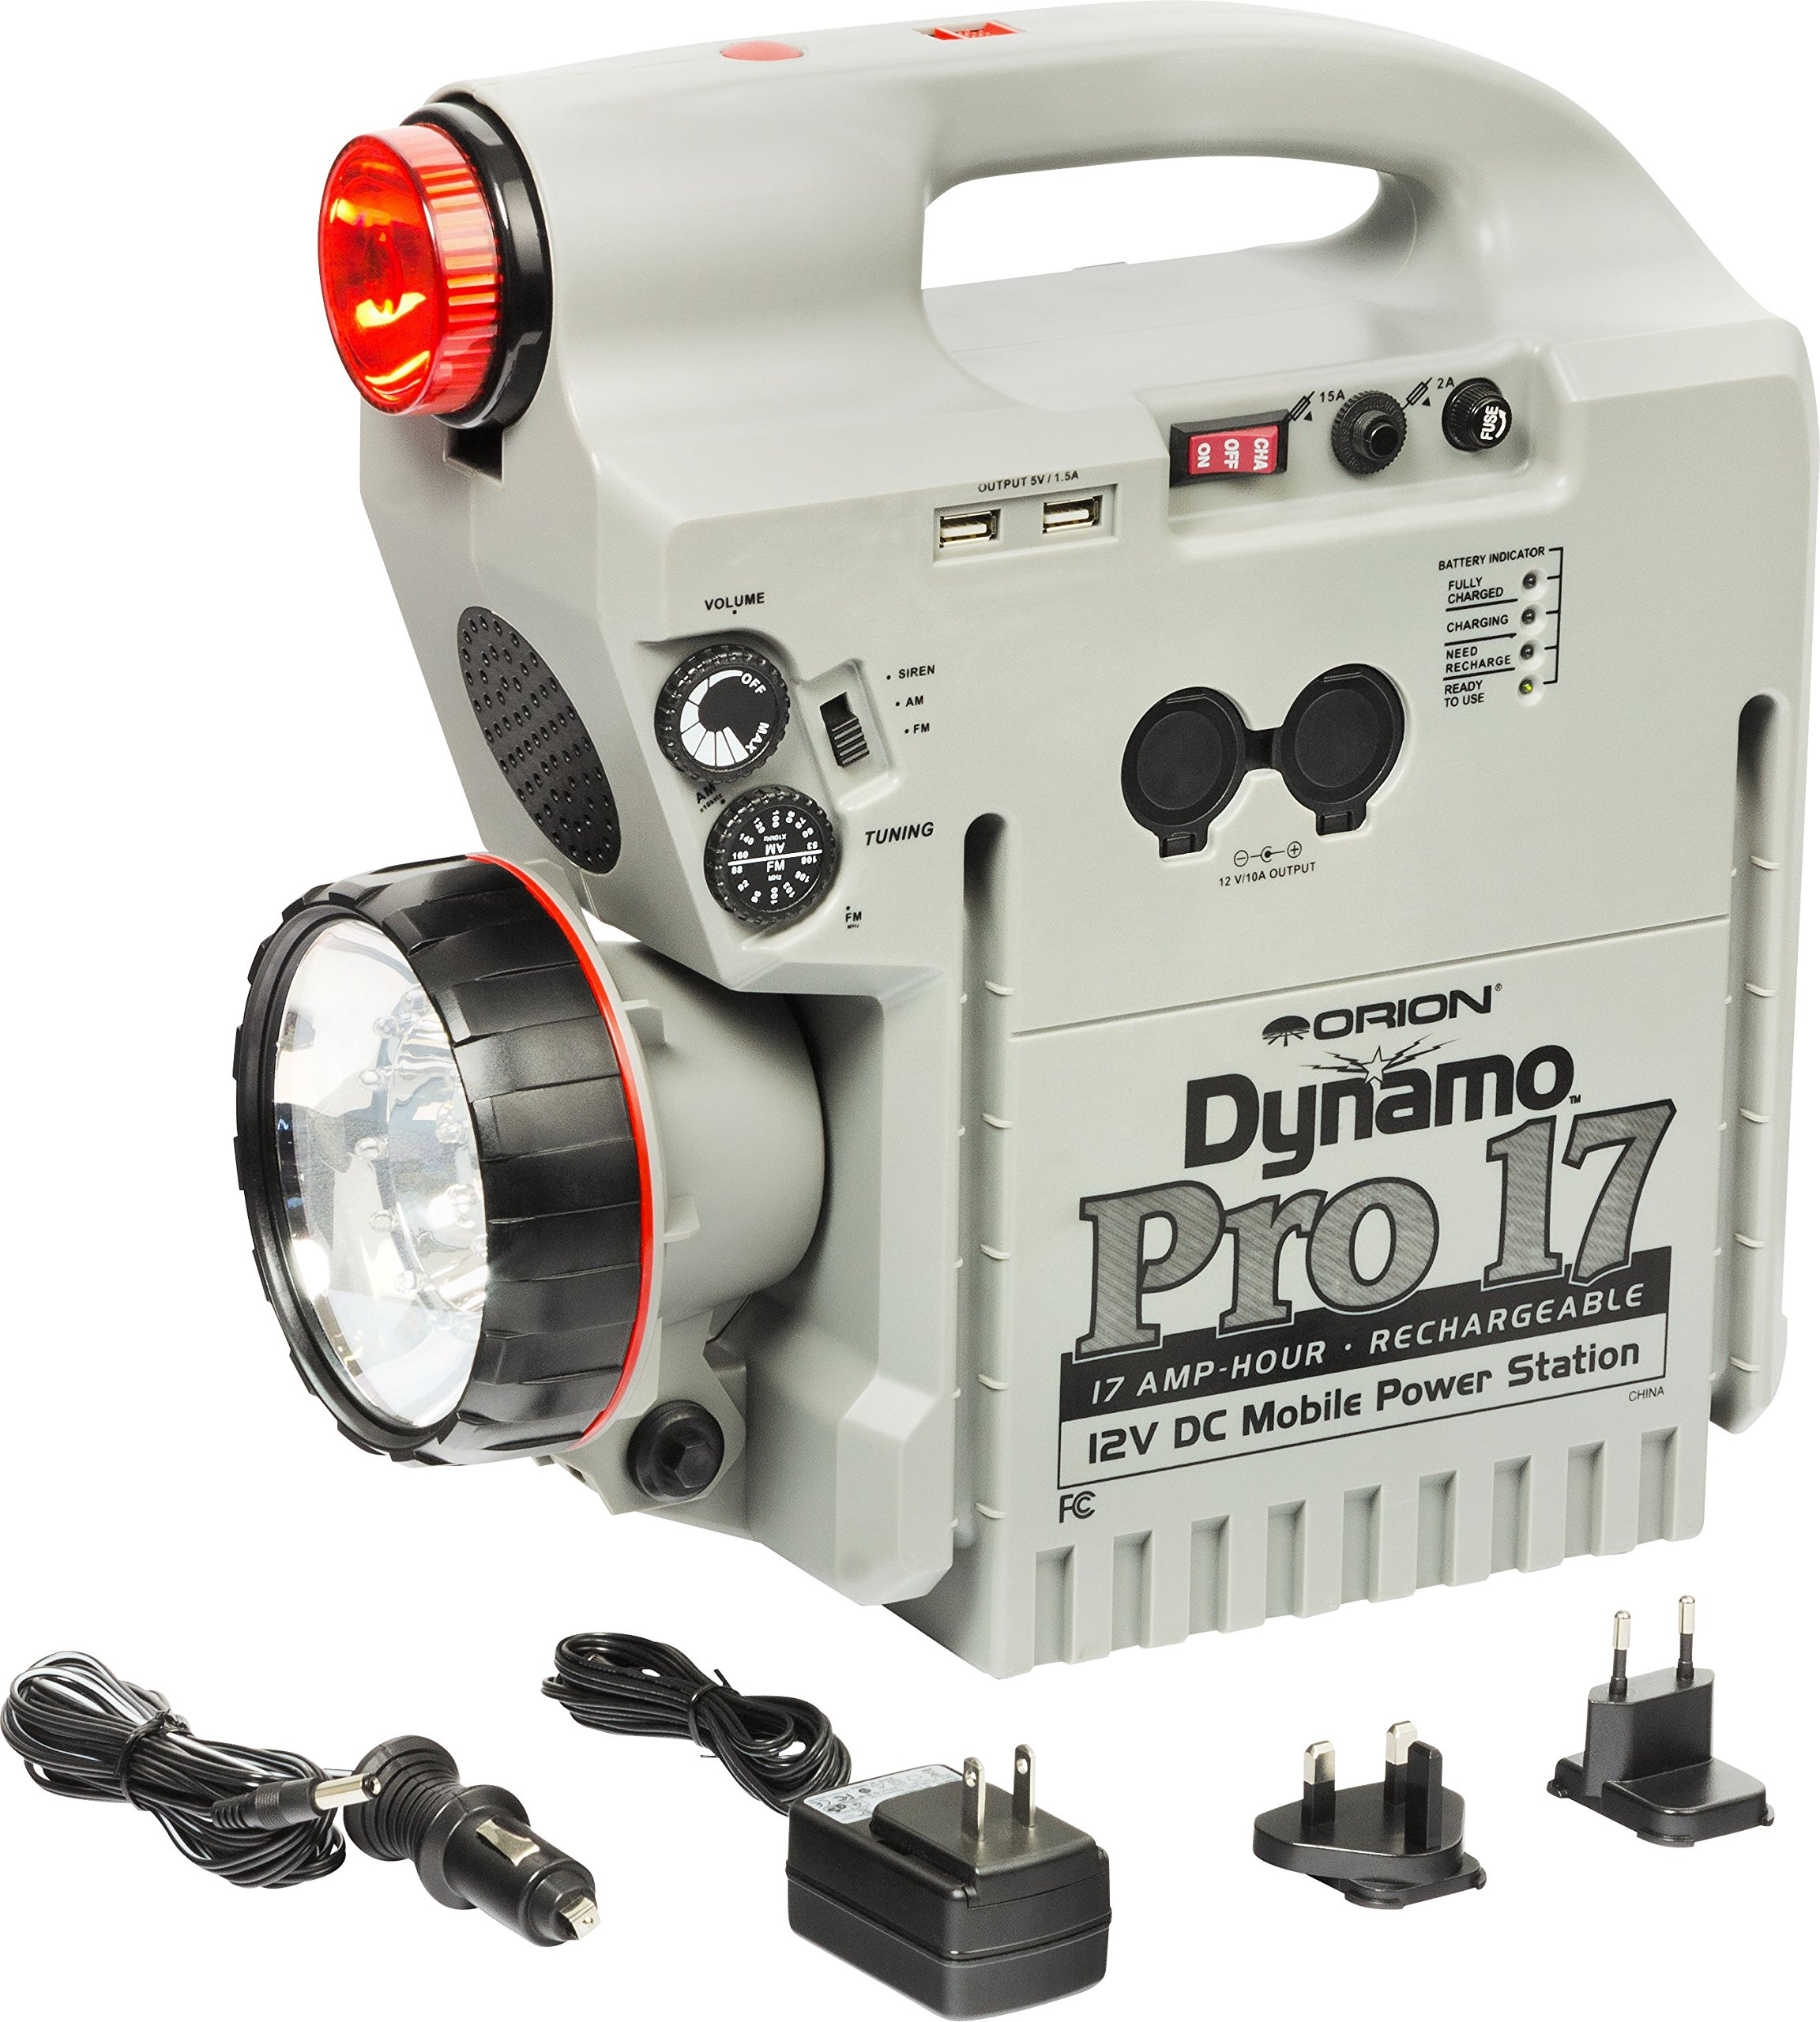 Orion 02308 Dynamo Pro 17Ah Rechargeable 12V DC Power Station (Gray) by Orion